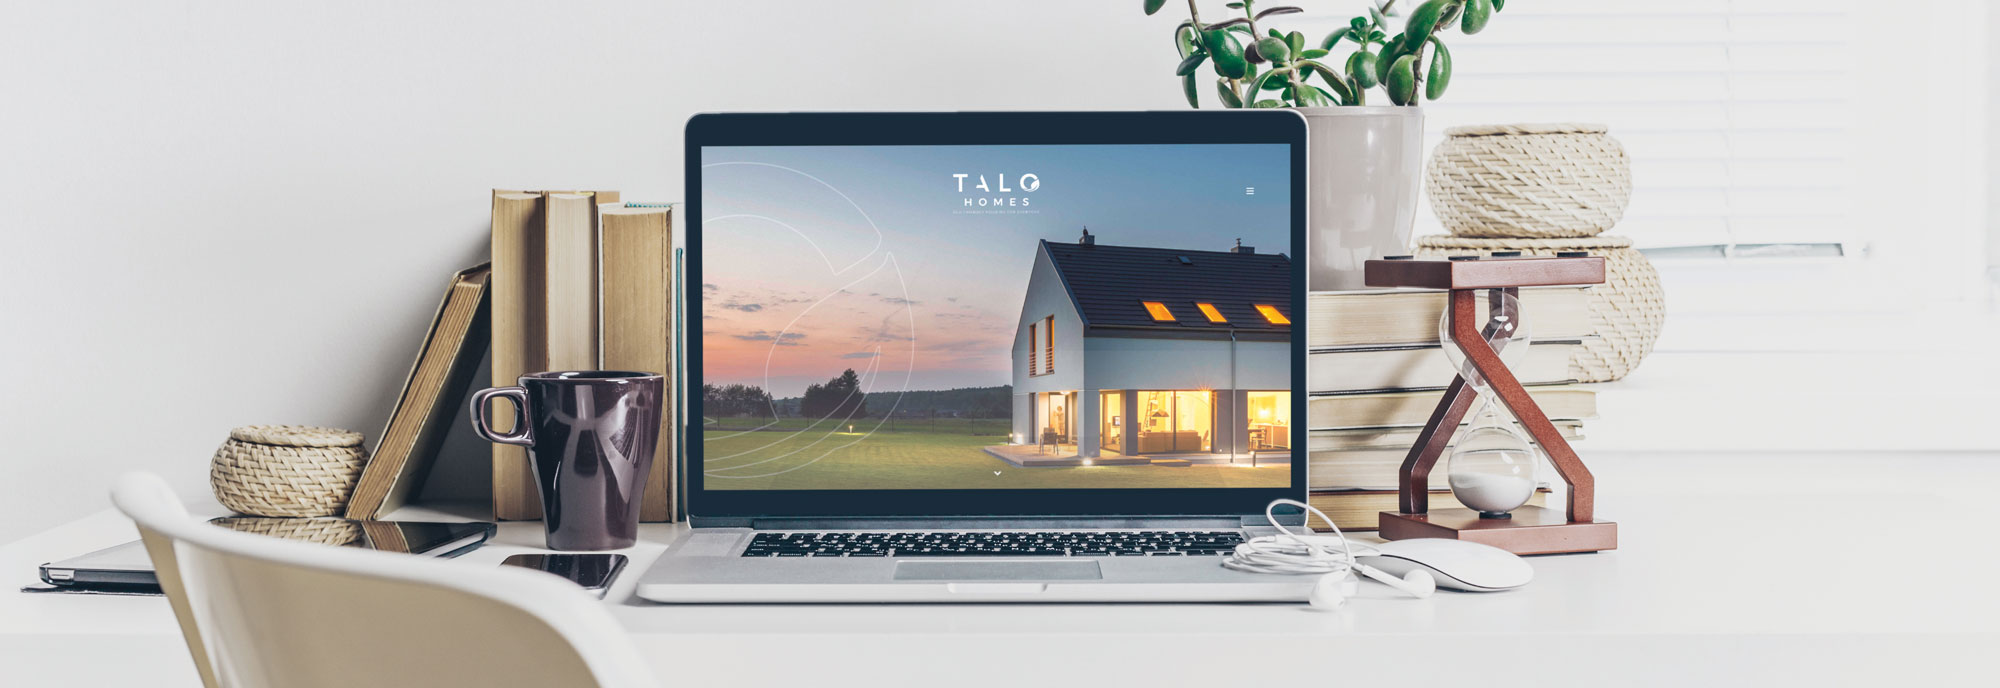 TALO Homes Website Development by Inventive